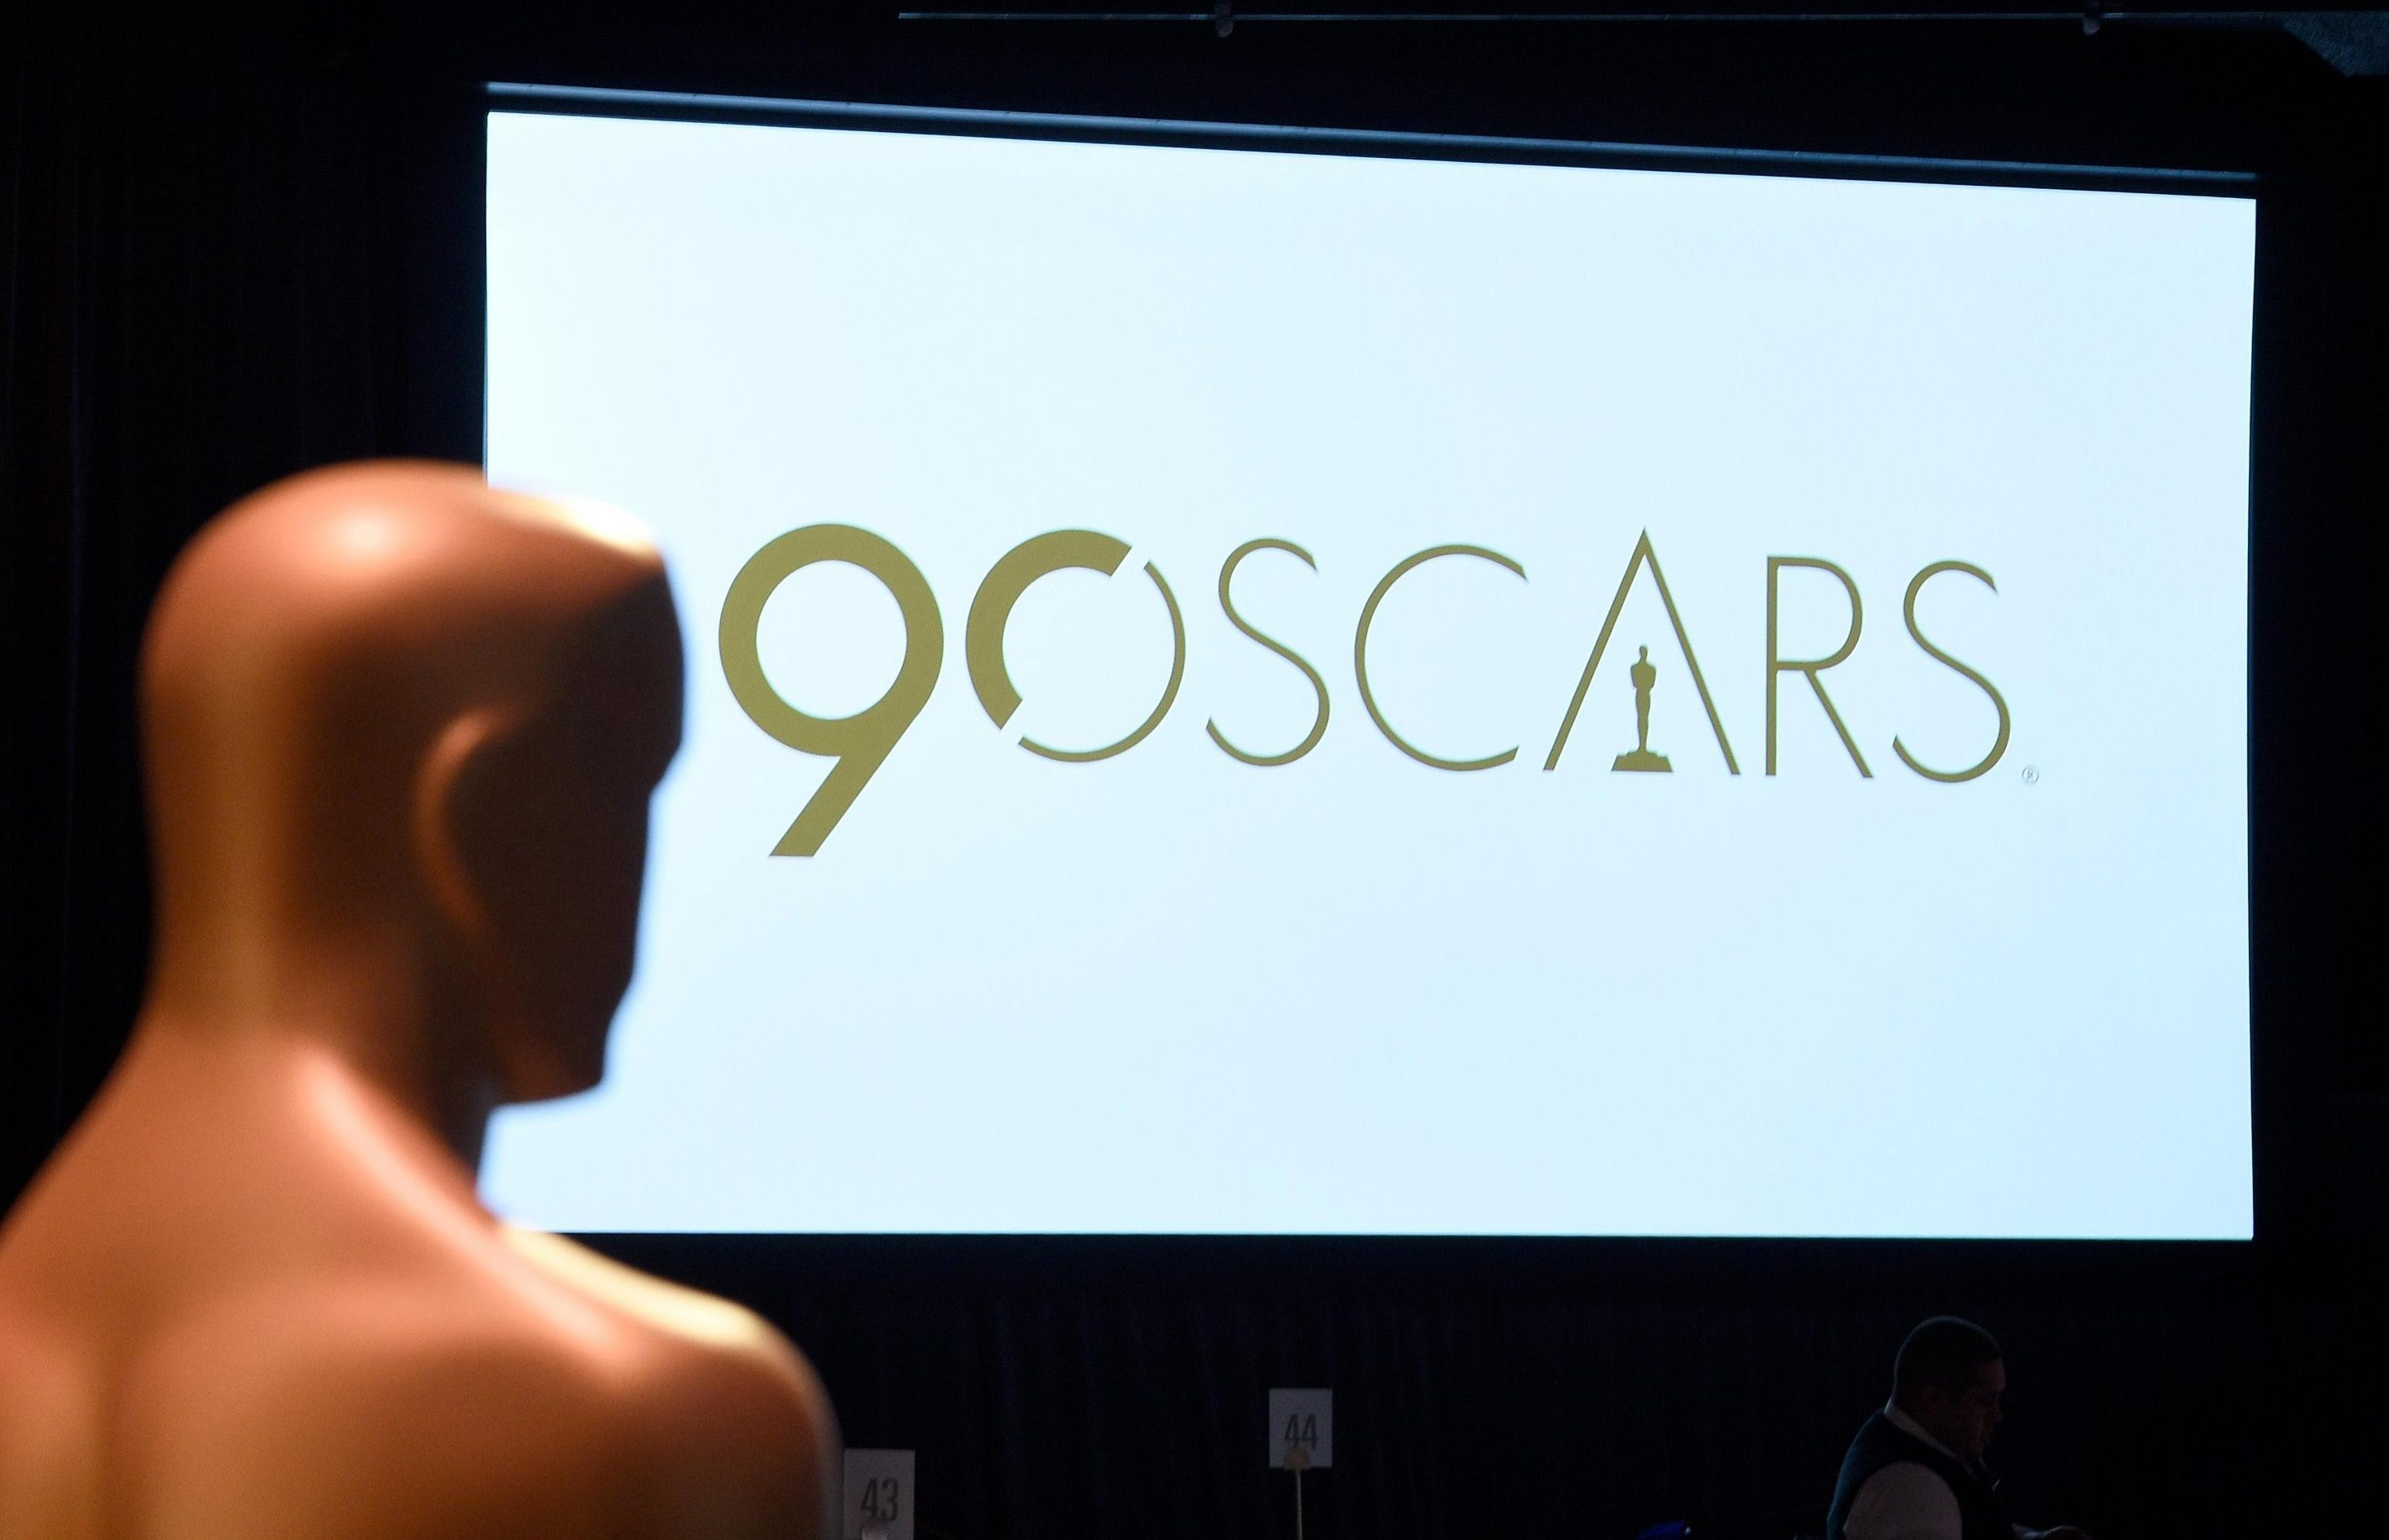 Oscars 2018 winners list in FULL – who won at the 90th Academy Awards and were the predictions right?